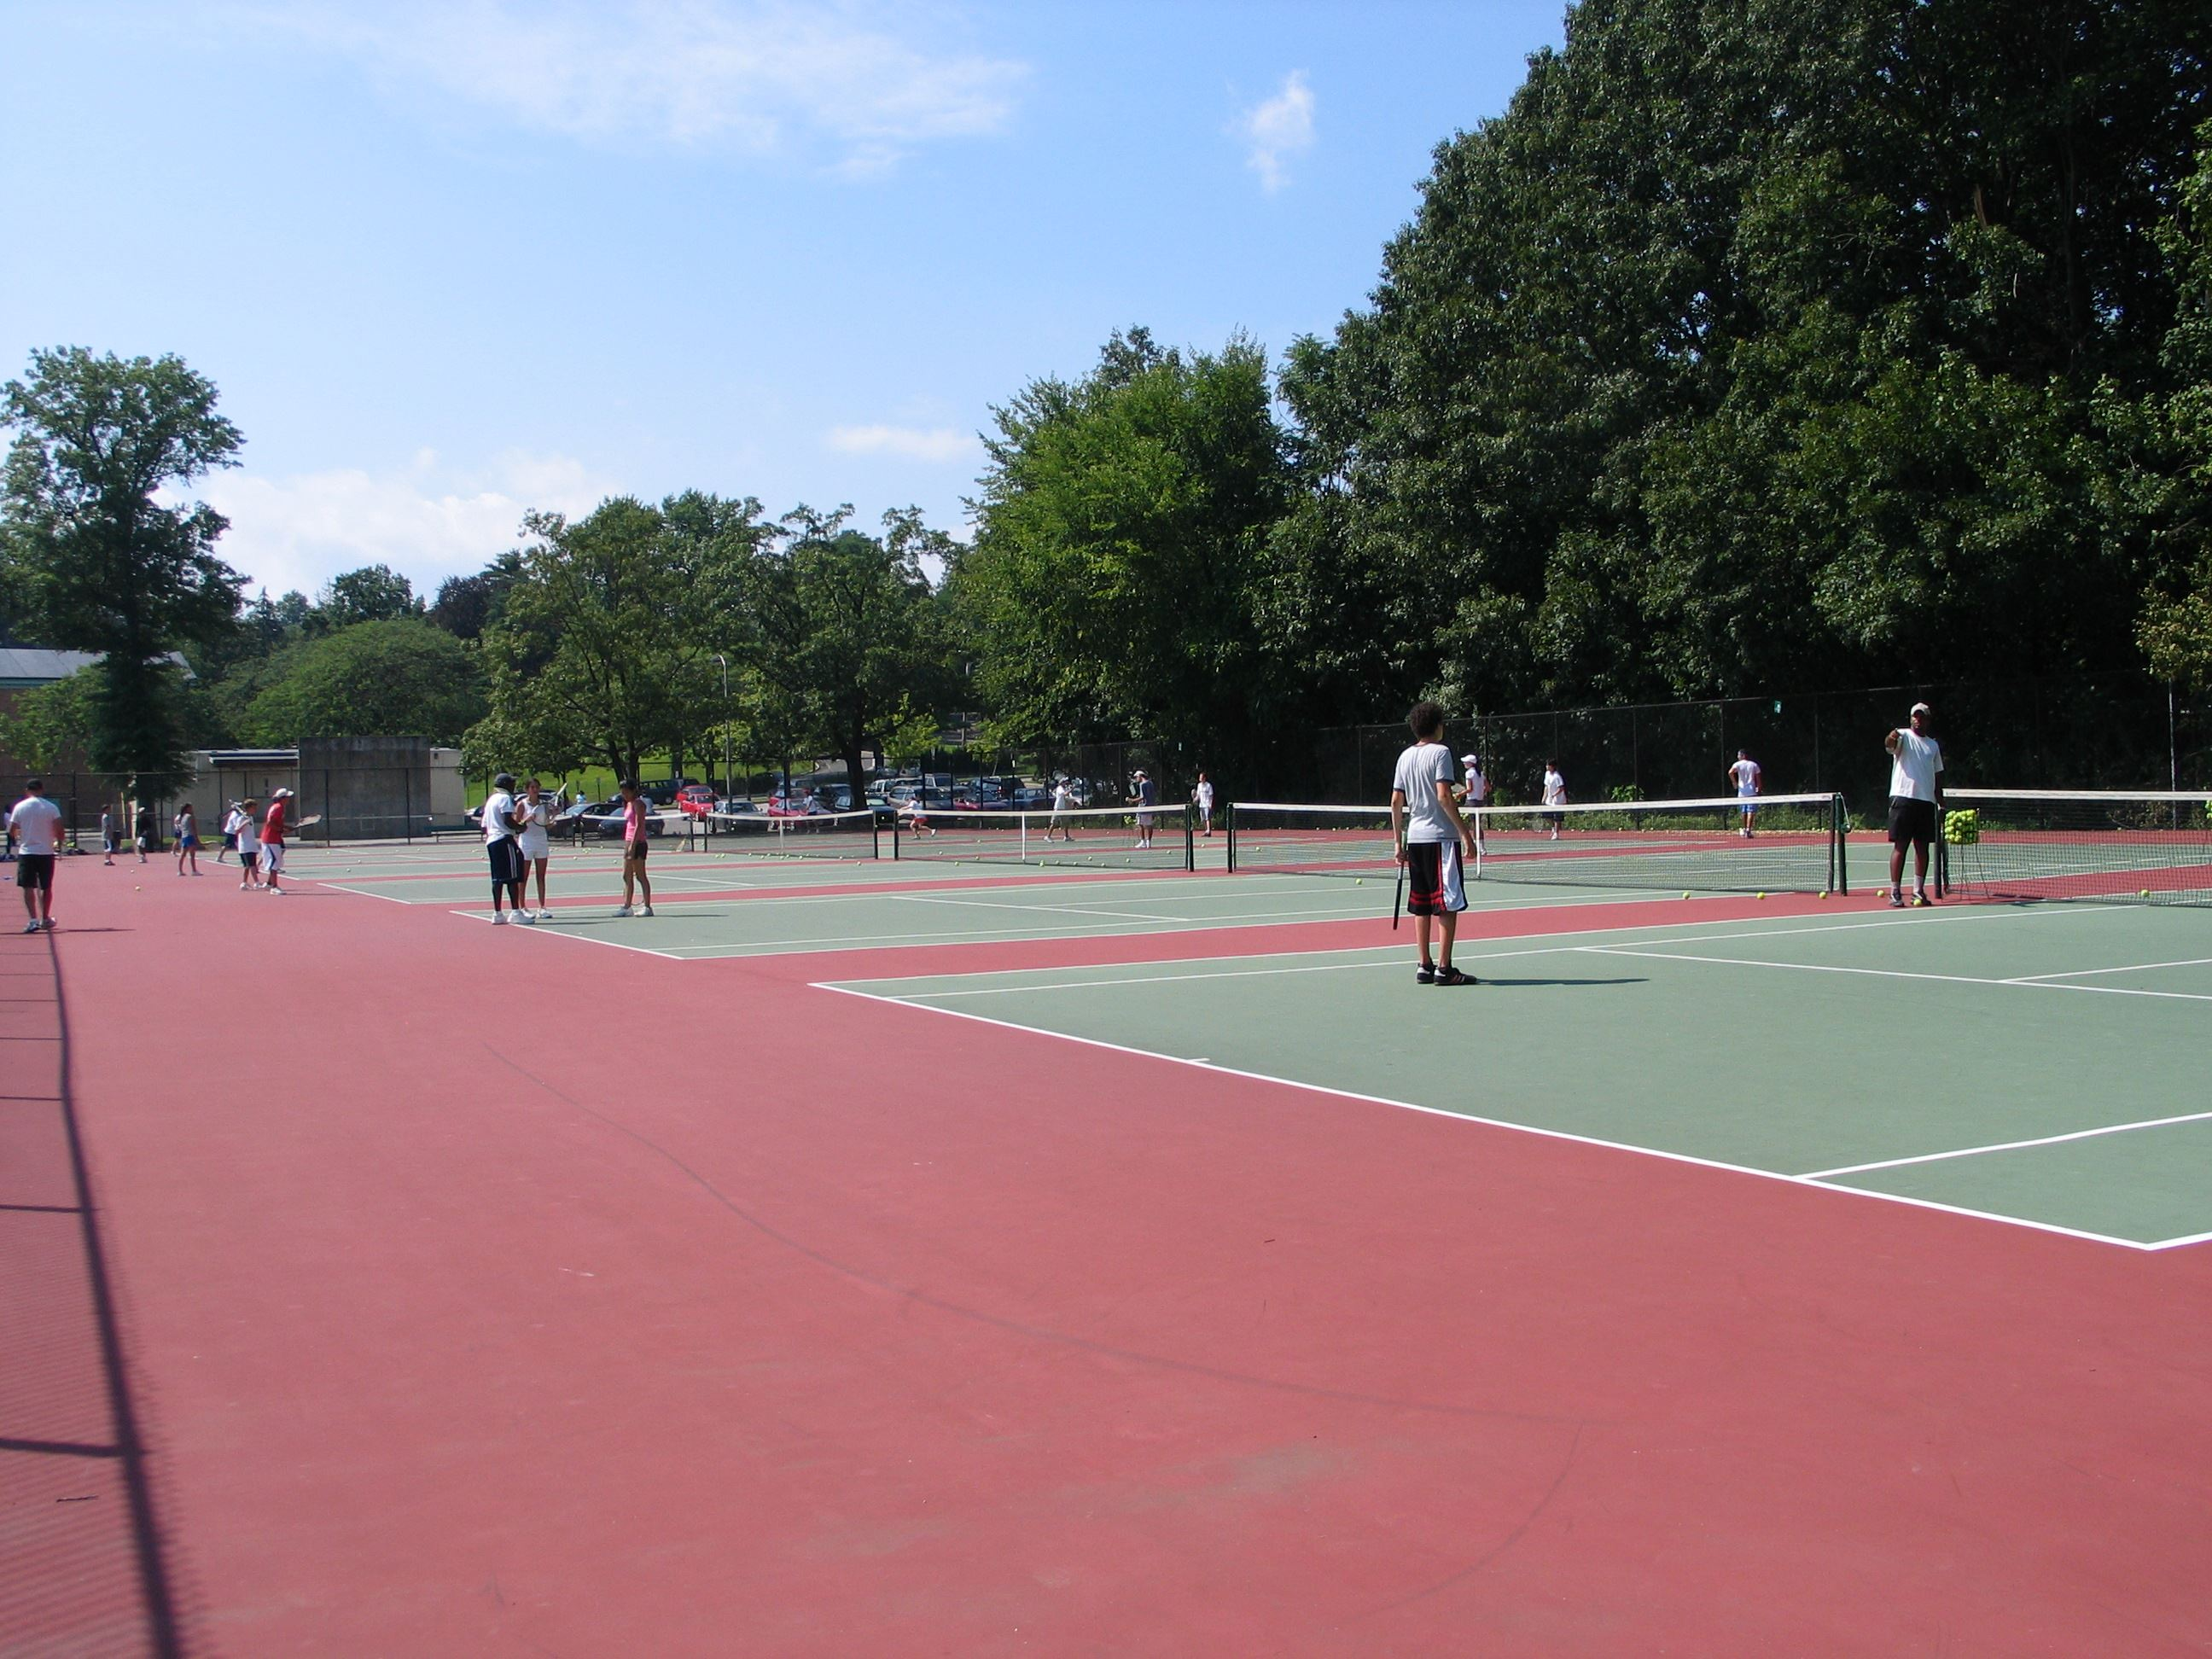 Middle School Tennis Courts